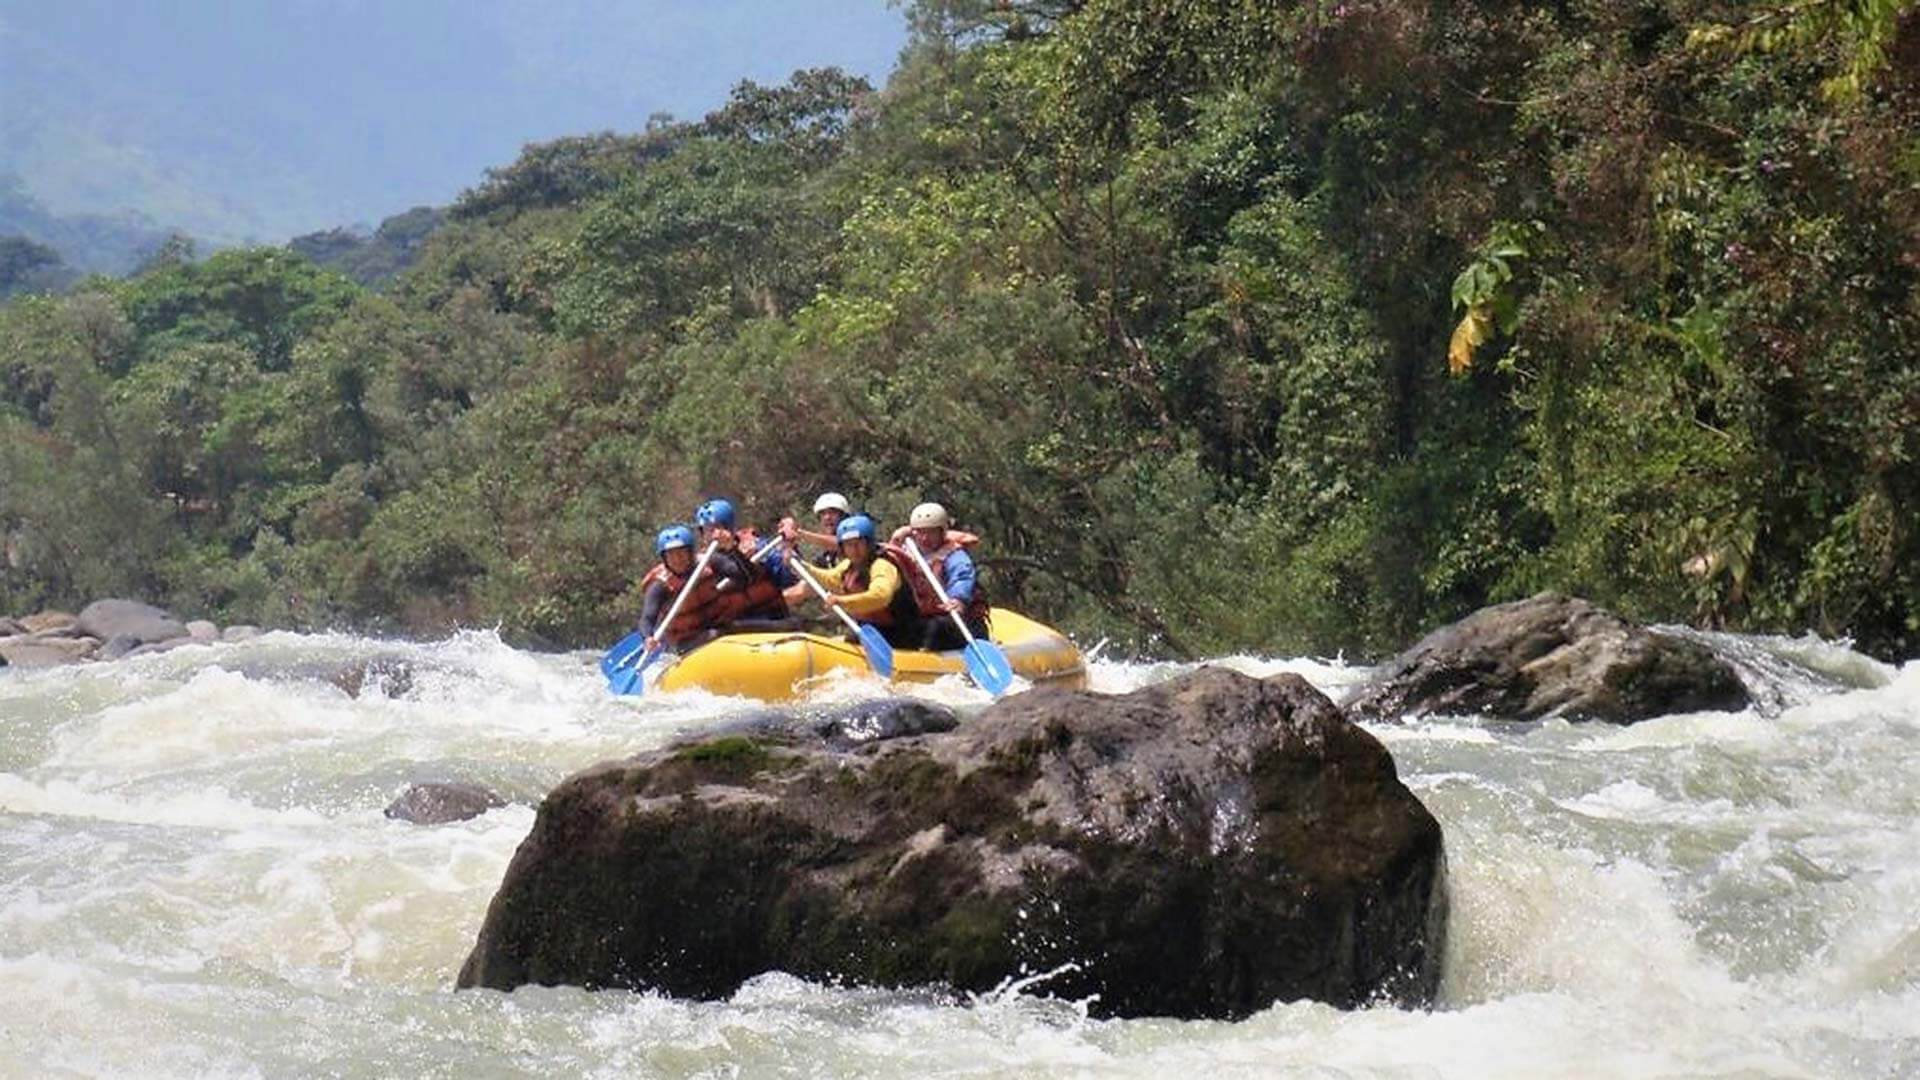 ecuador rafting tour in jungle rapids with rocks